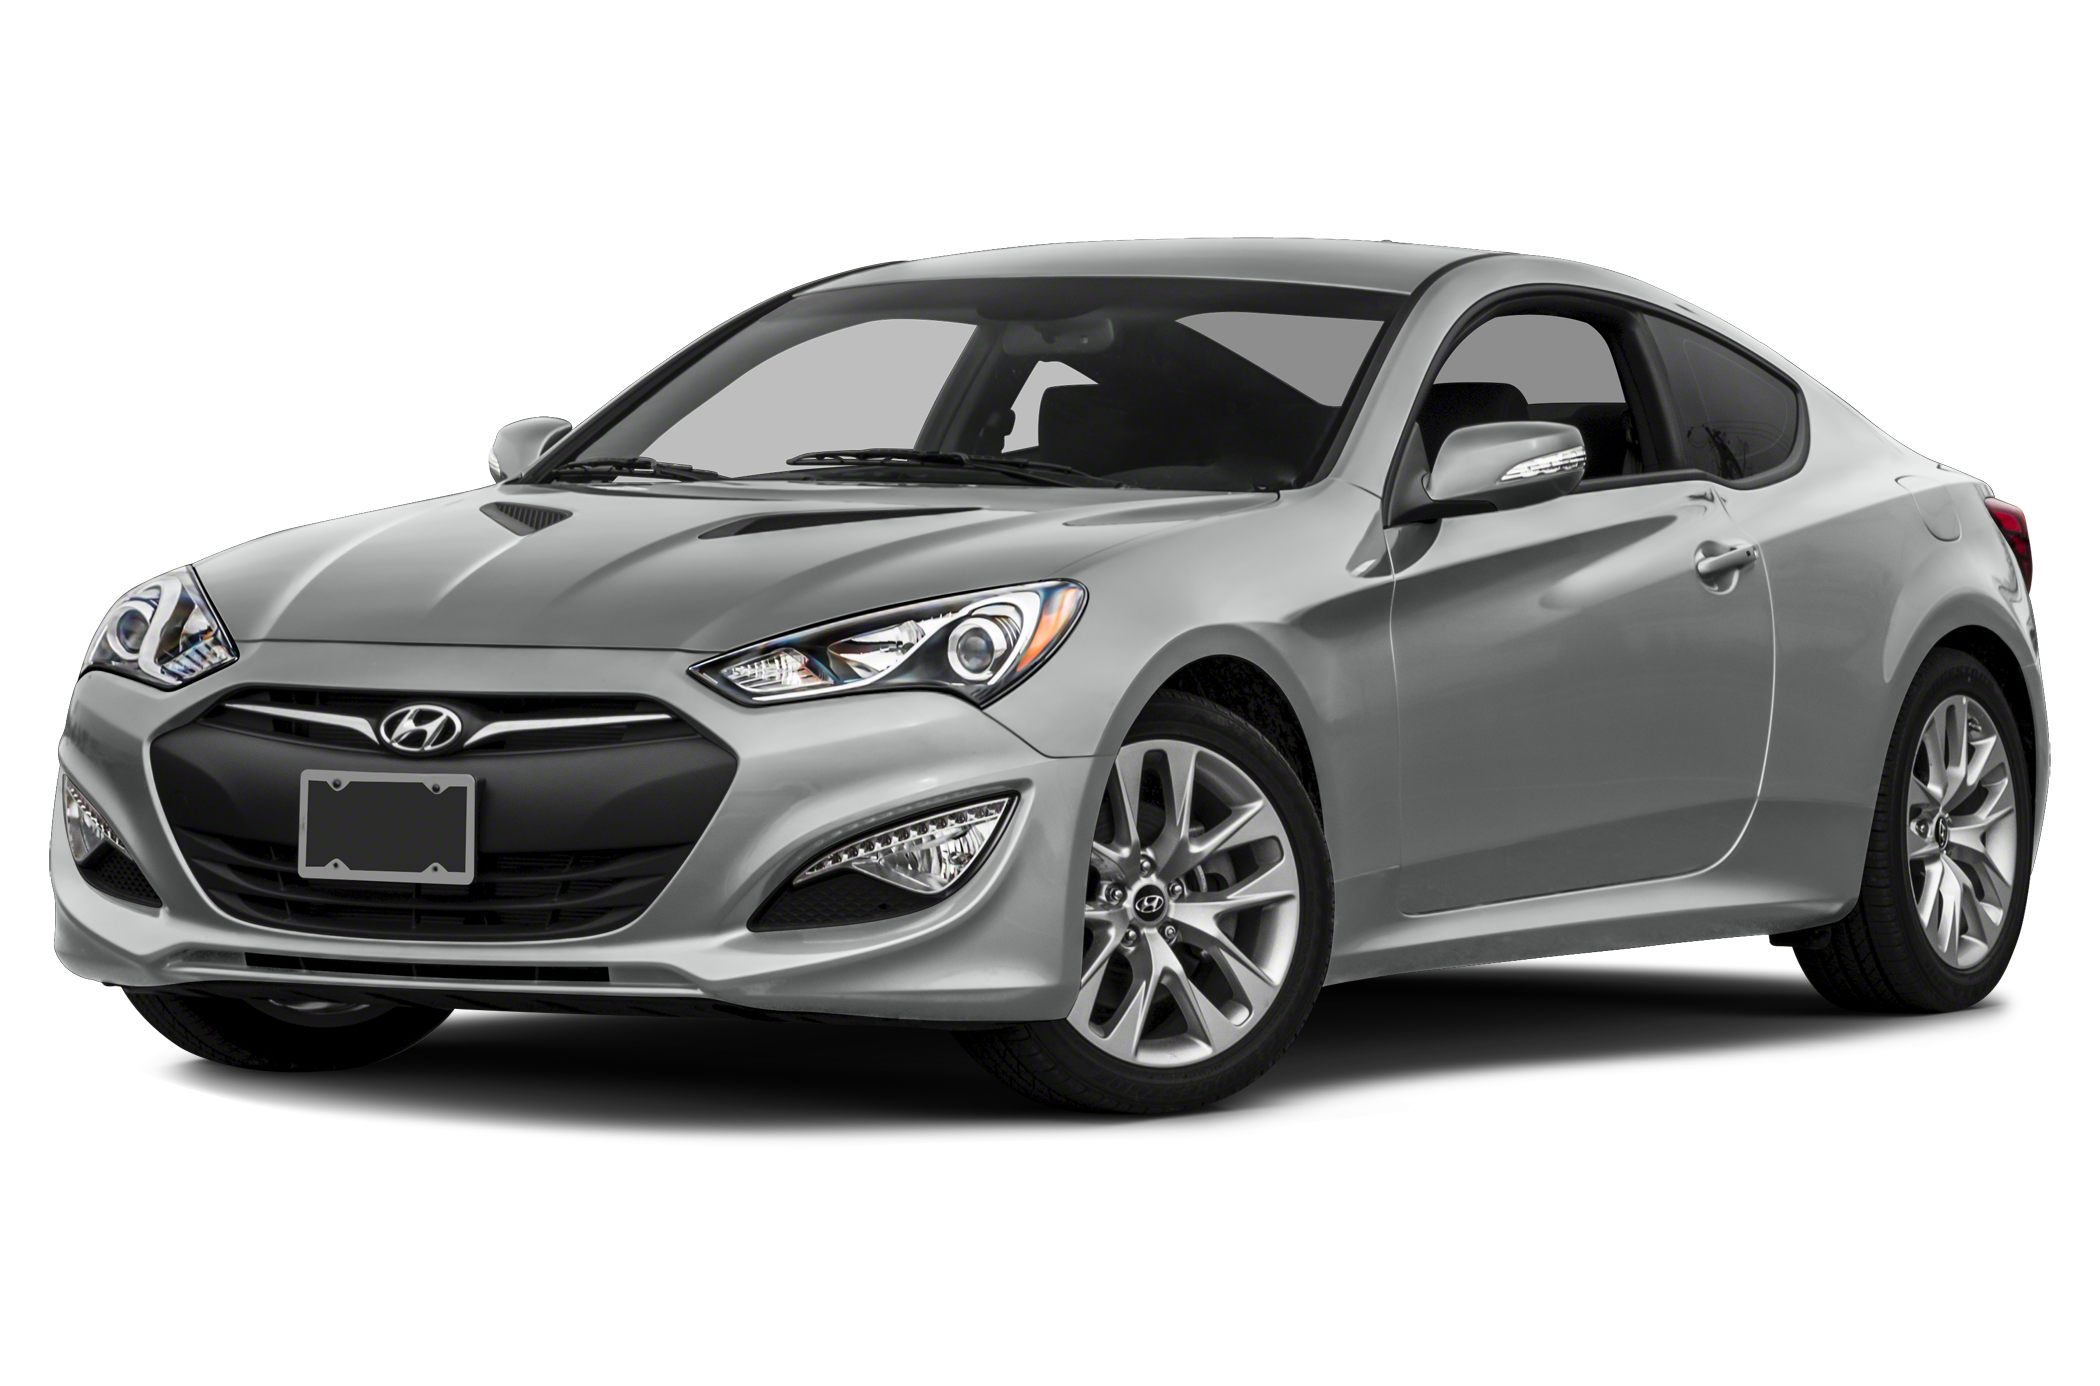 Hyundai Genesis Coupe Prices Reviews And New Model